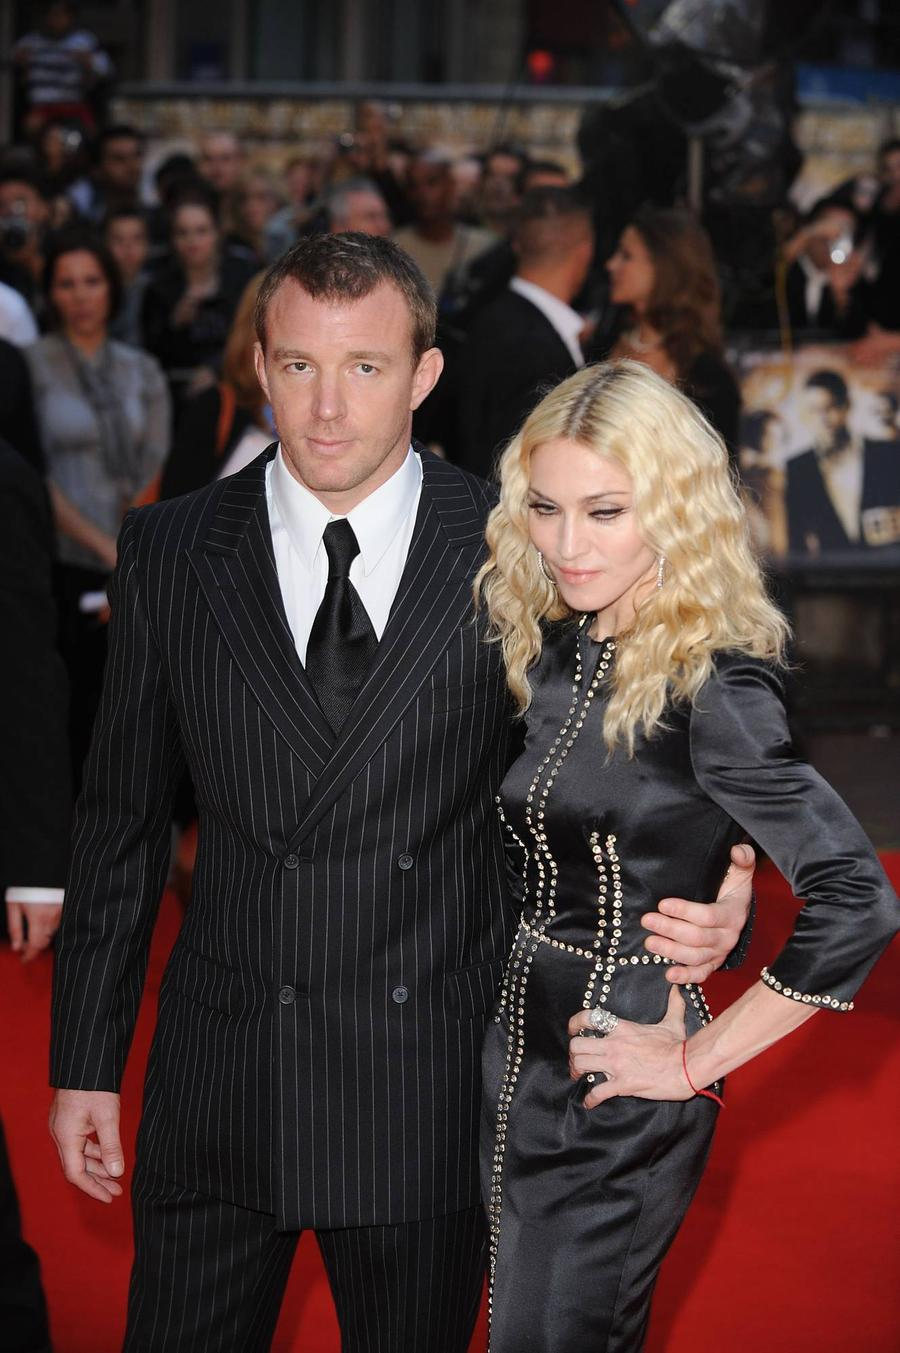 Guy Ritchie Seeks Madonna Custody Battle Support From Dad Activists